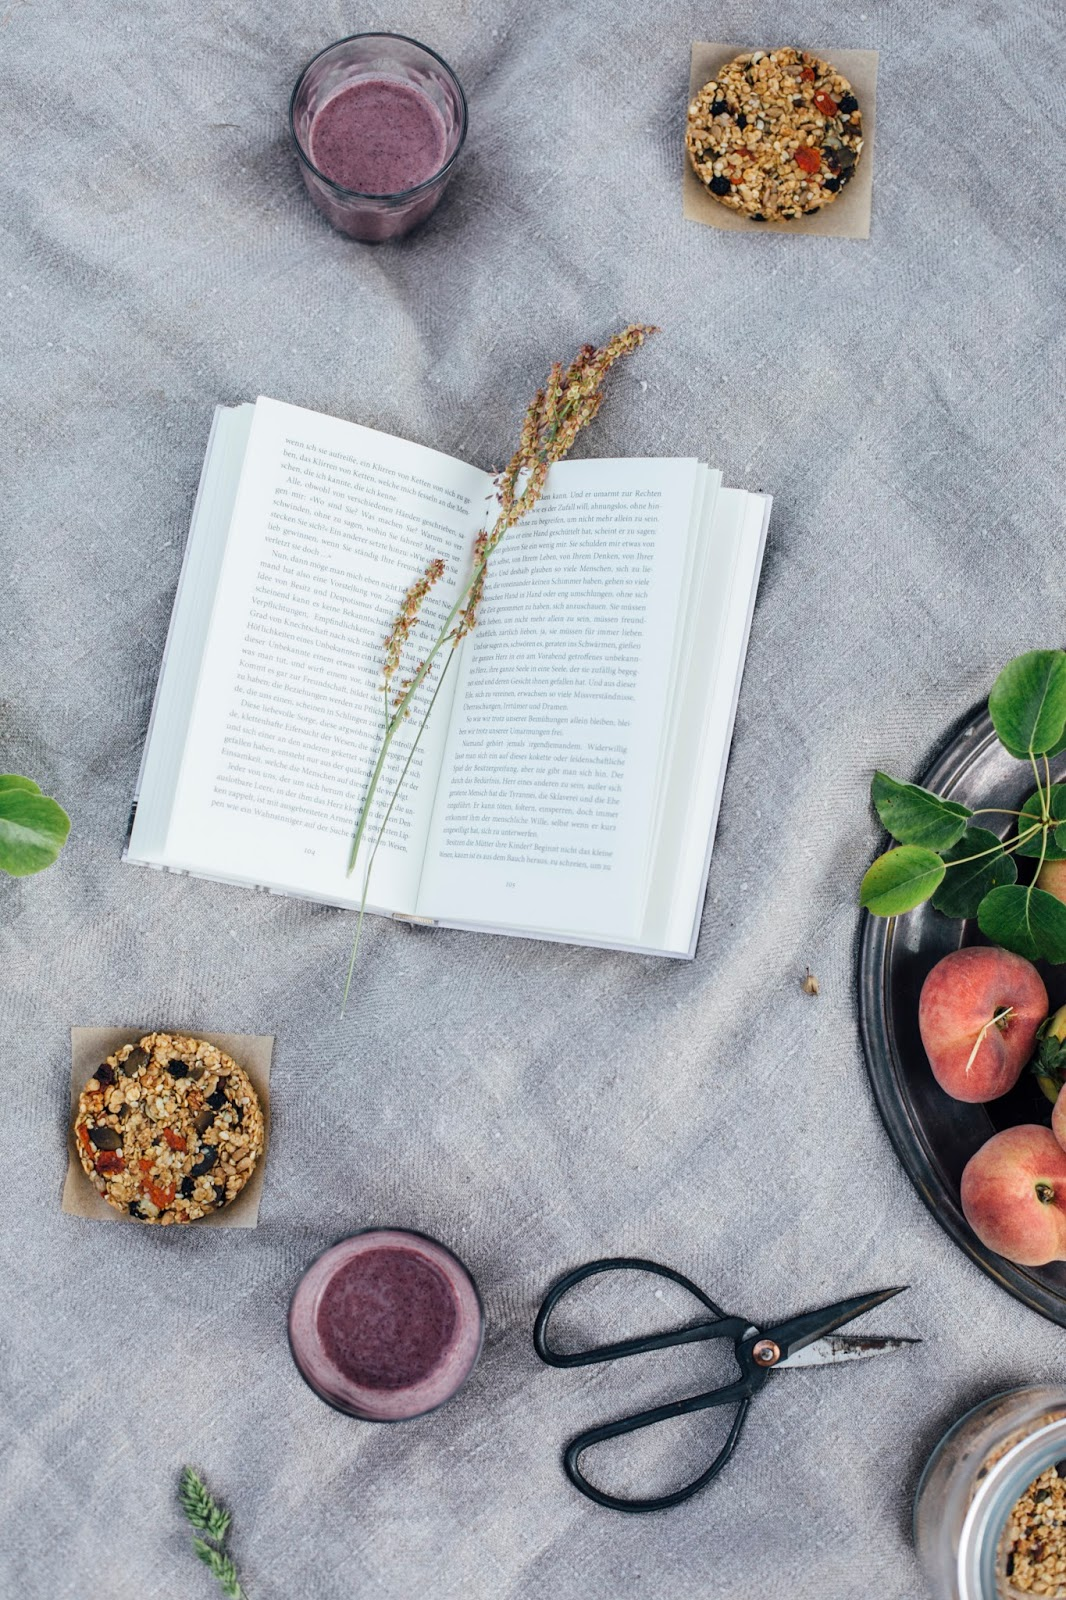 glutenfree round superfood granola bars and a aronia peach smoothie our food stories bloglovin. Black Bedroom Furniture Sets. Home Design Ideas